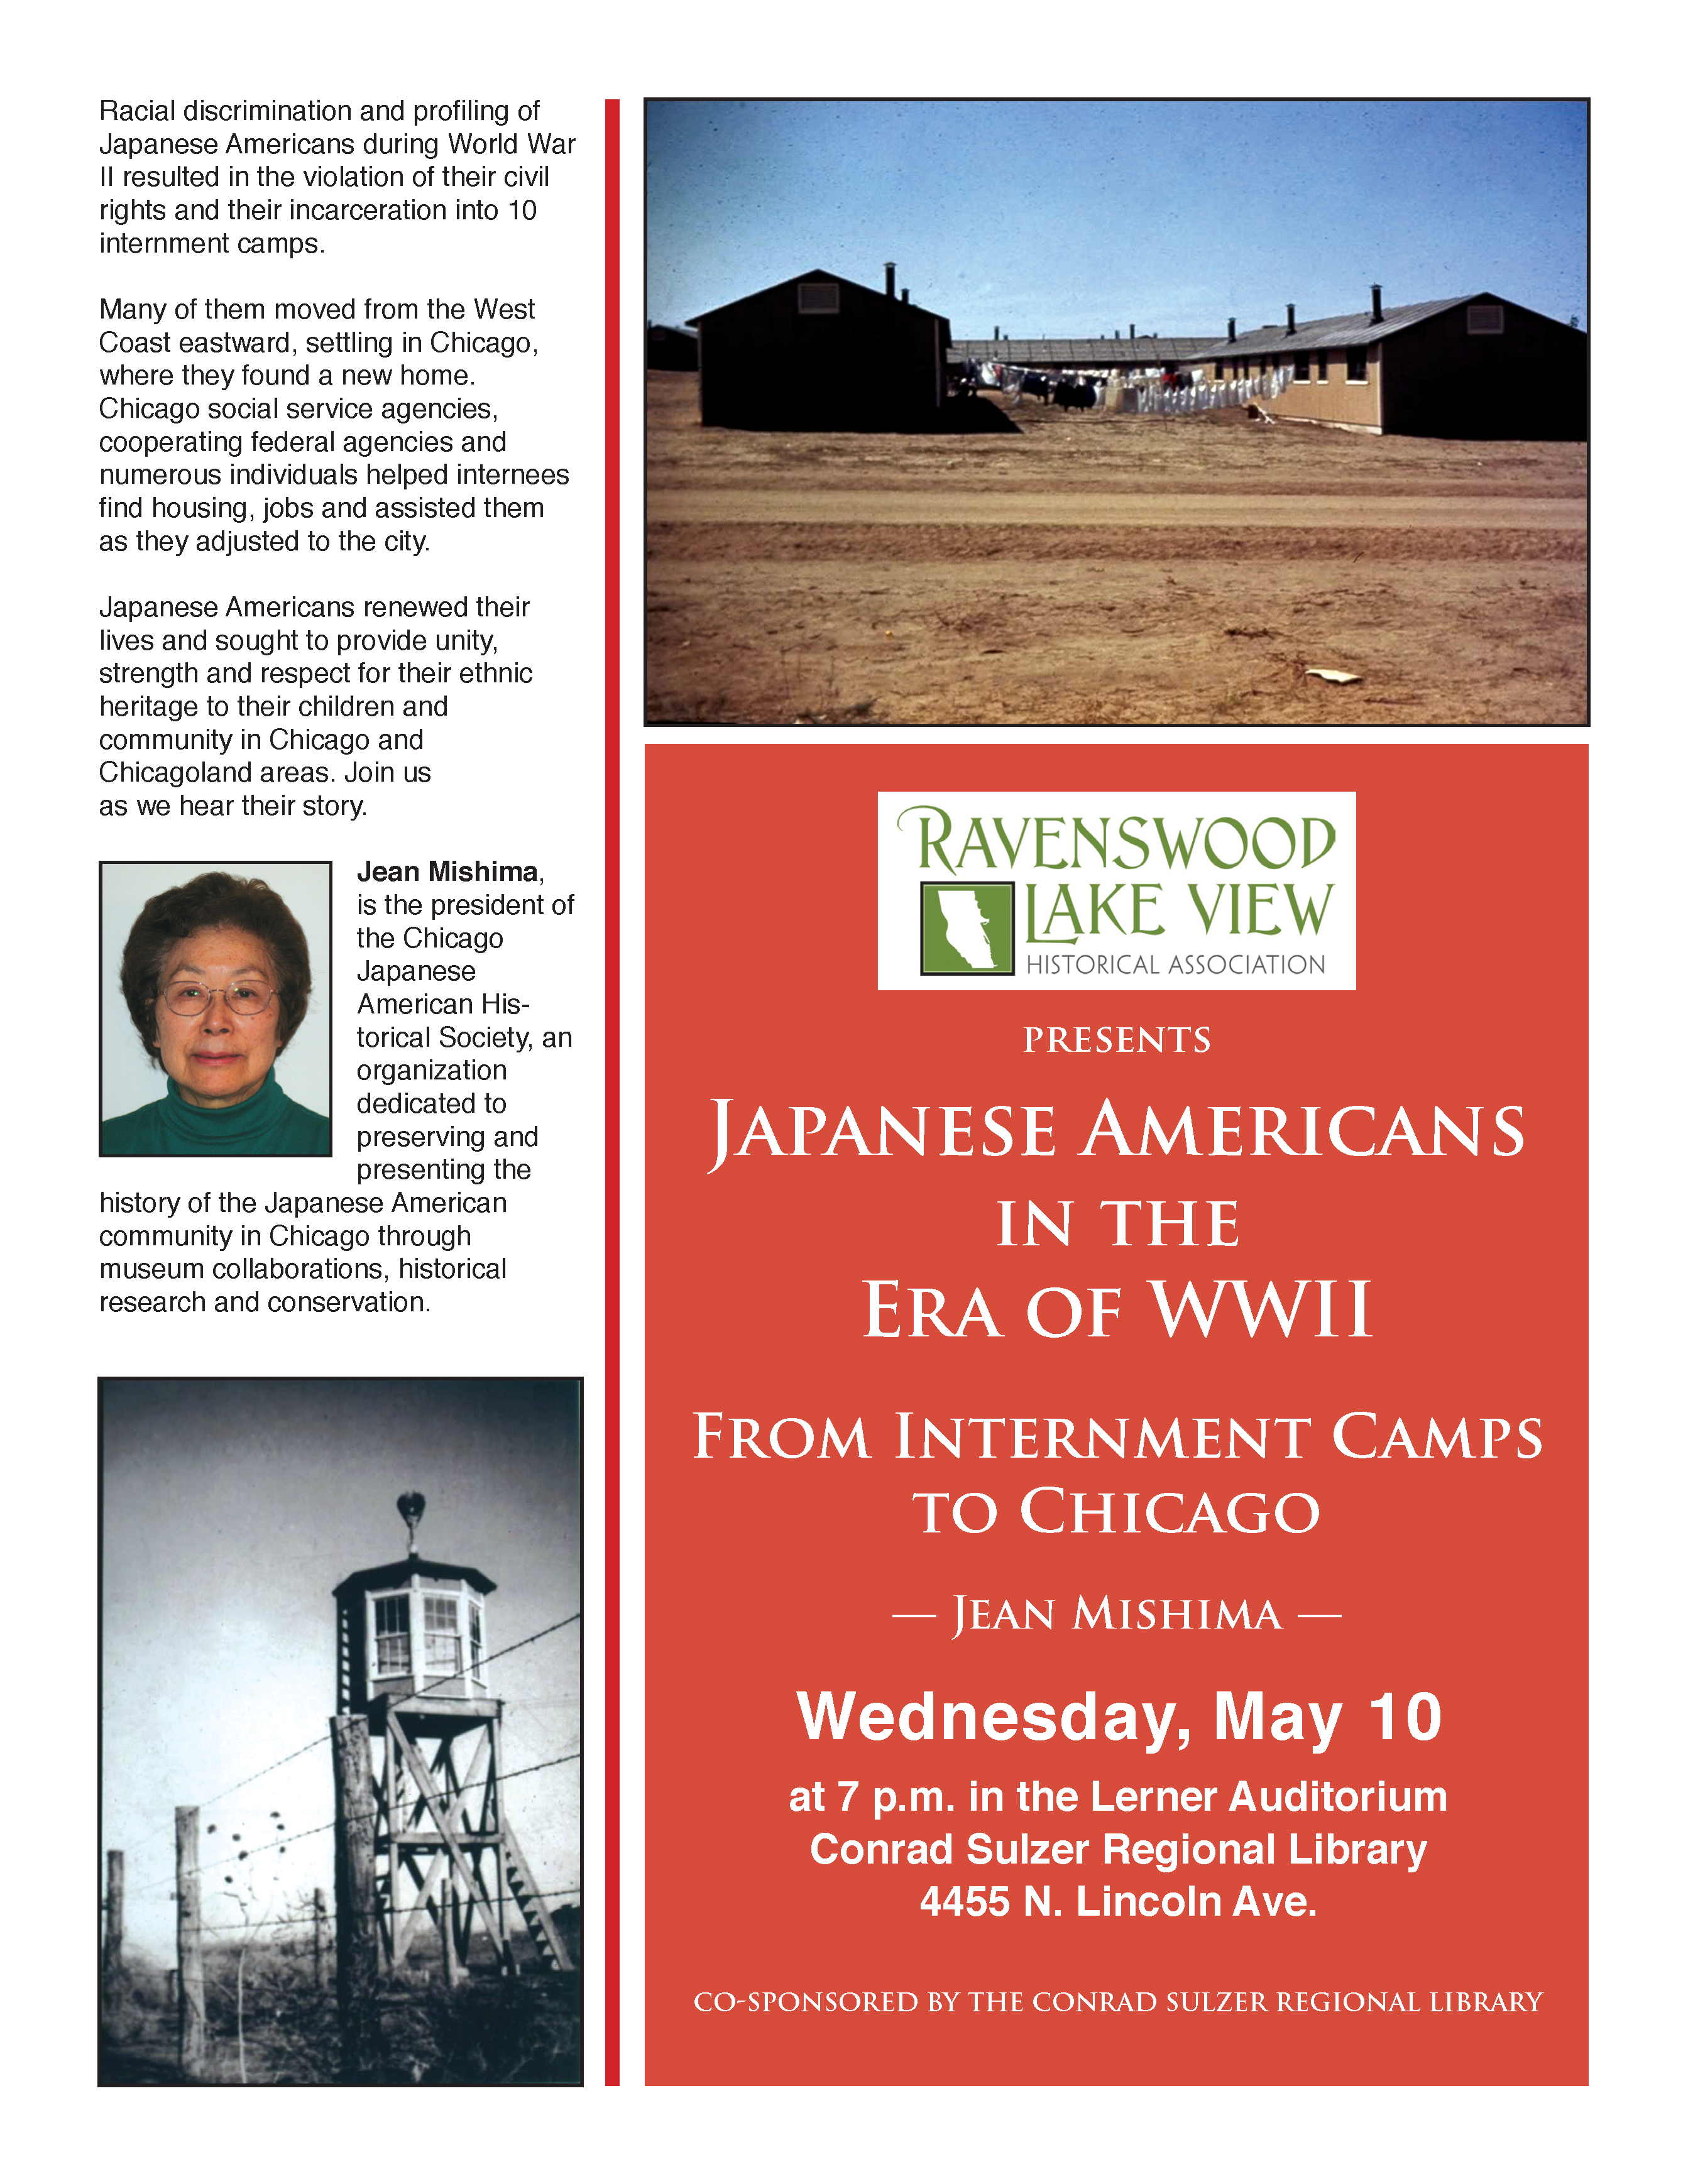 Japanese Americans in the Era of WWII, Wednesday, May 10, 7 P.M., Conrad Sulzer Regional Library, 4455 N. Lincoln Ave.